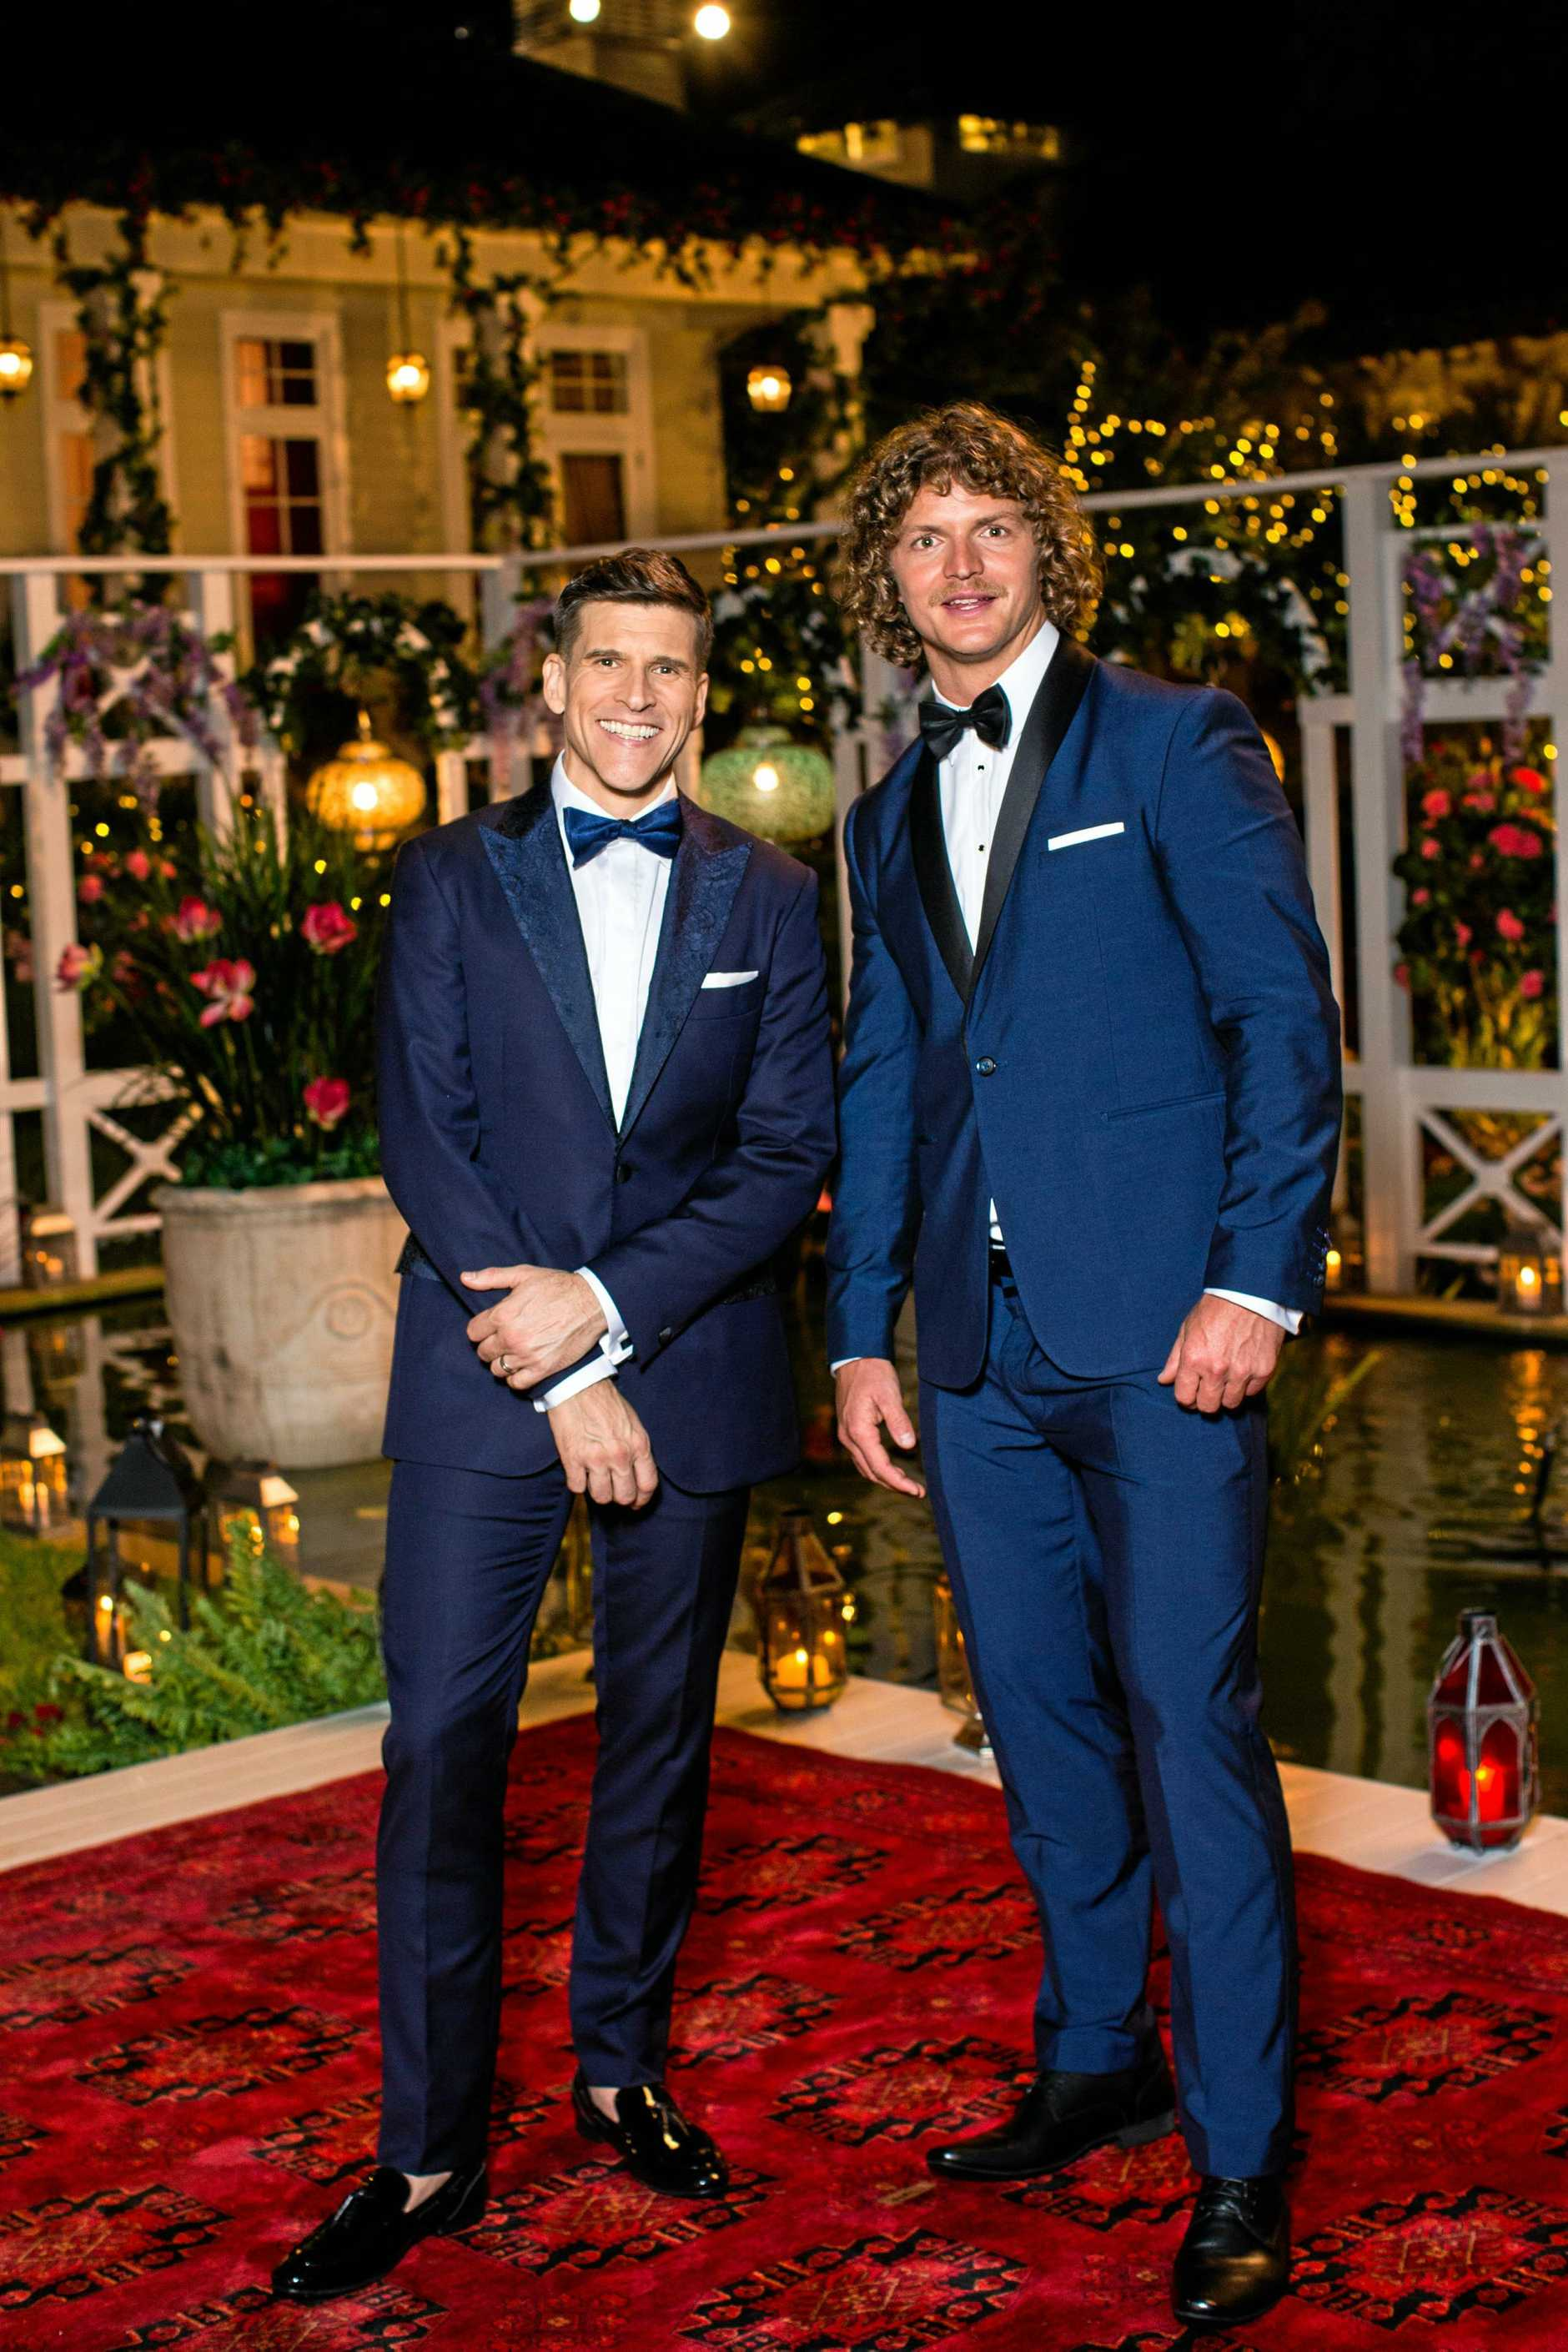 The Bachelor Australia host Osher Gunsberg with this year's Bachelor Nick Cummins. Supplied by Channel 10.